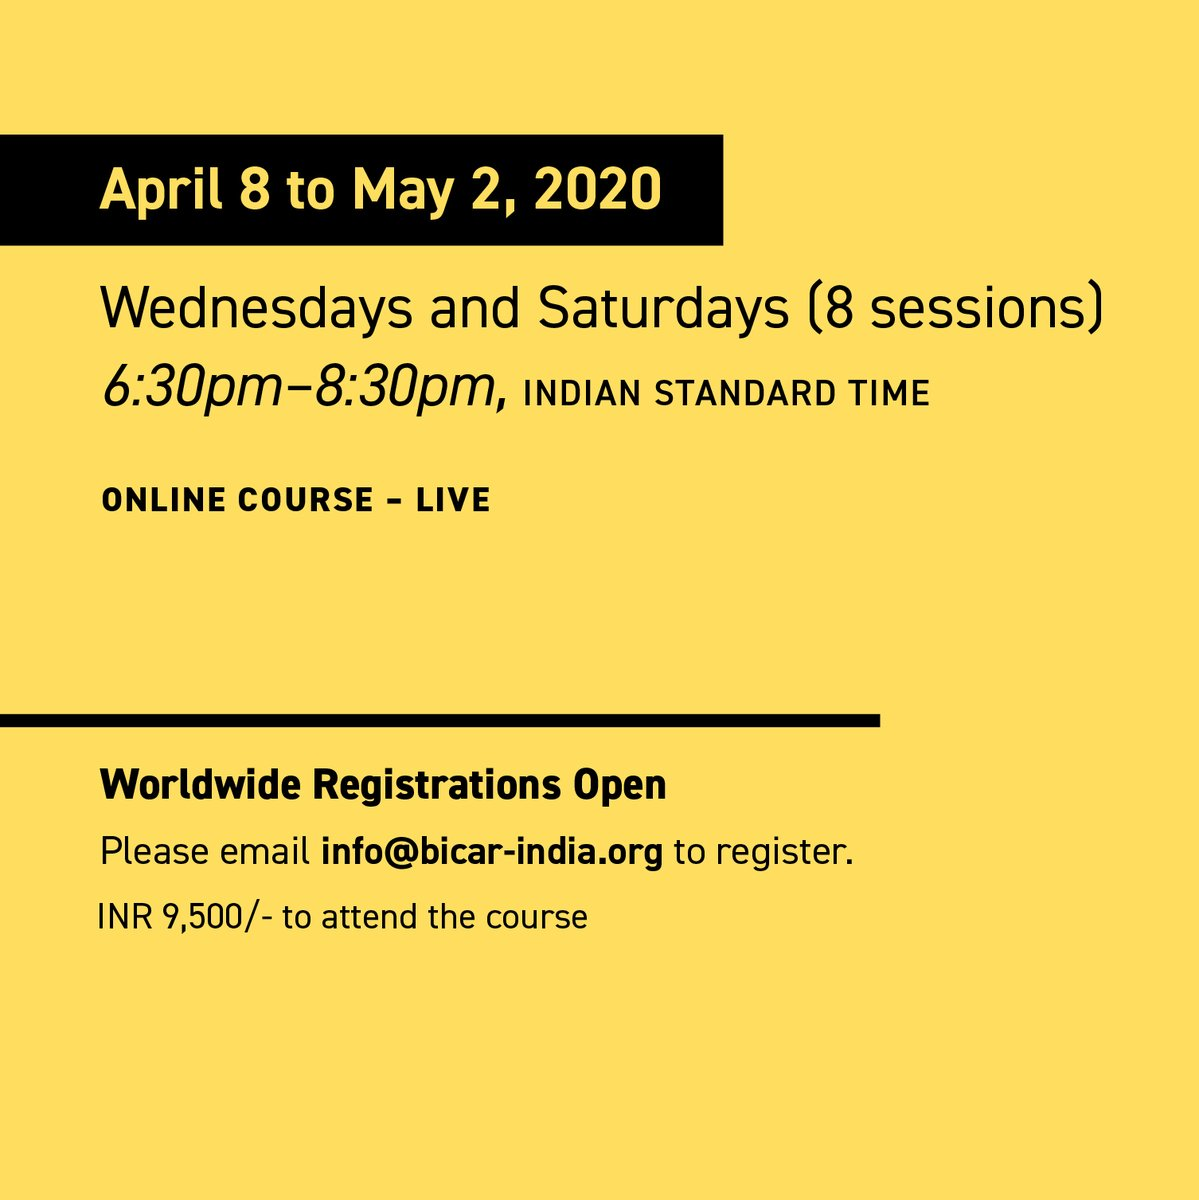 Let former University of Chicago prof Rohit Goel teach you how to write argumentatively; useful for grad school applications, research proposals, newspaper articles + more. 8 classes, April 8-May 2, Rs 9500, sign up: info@bicar-india.org.